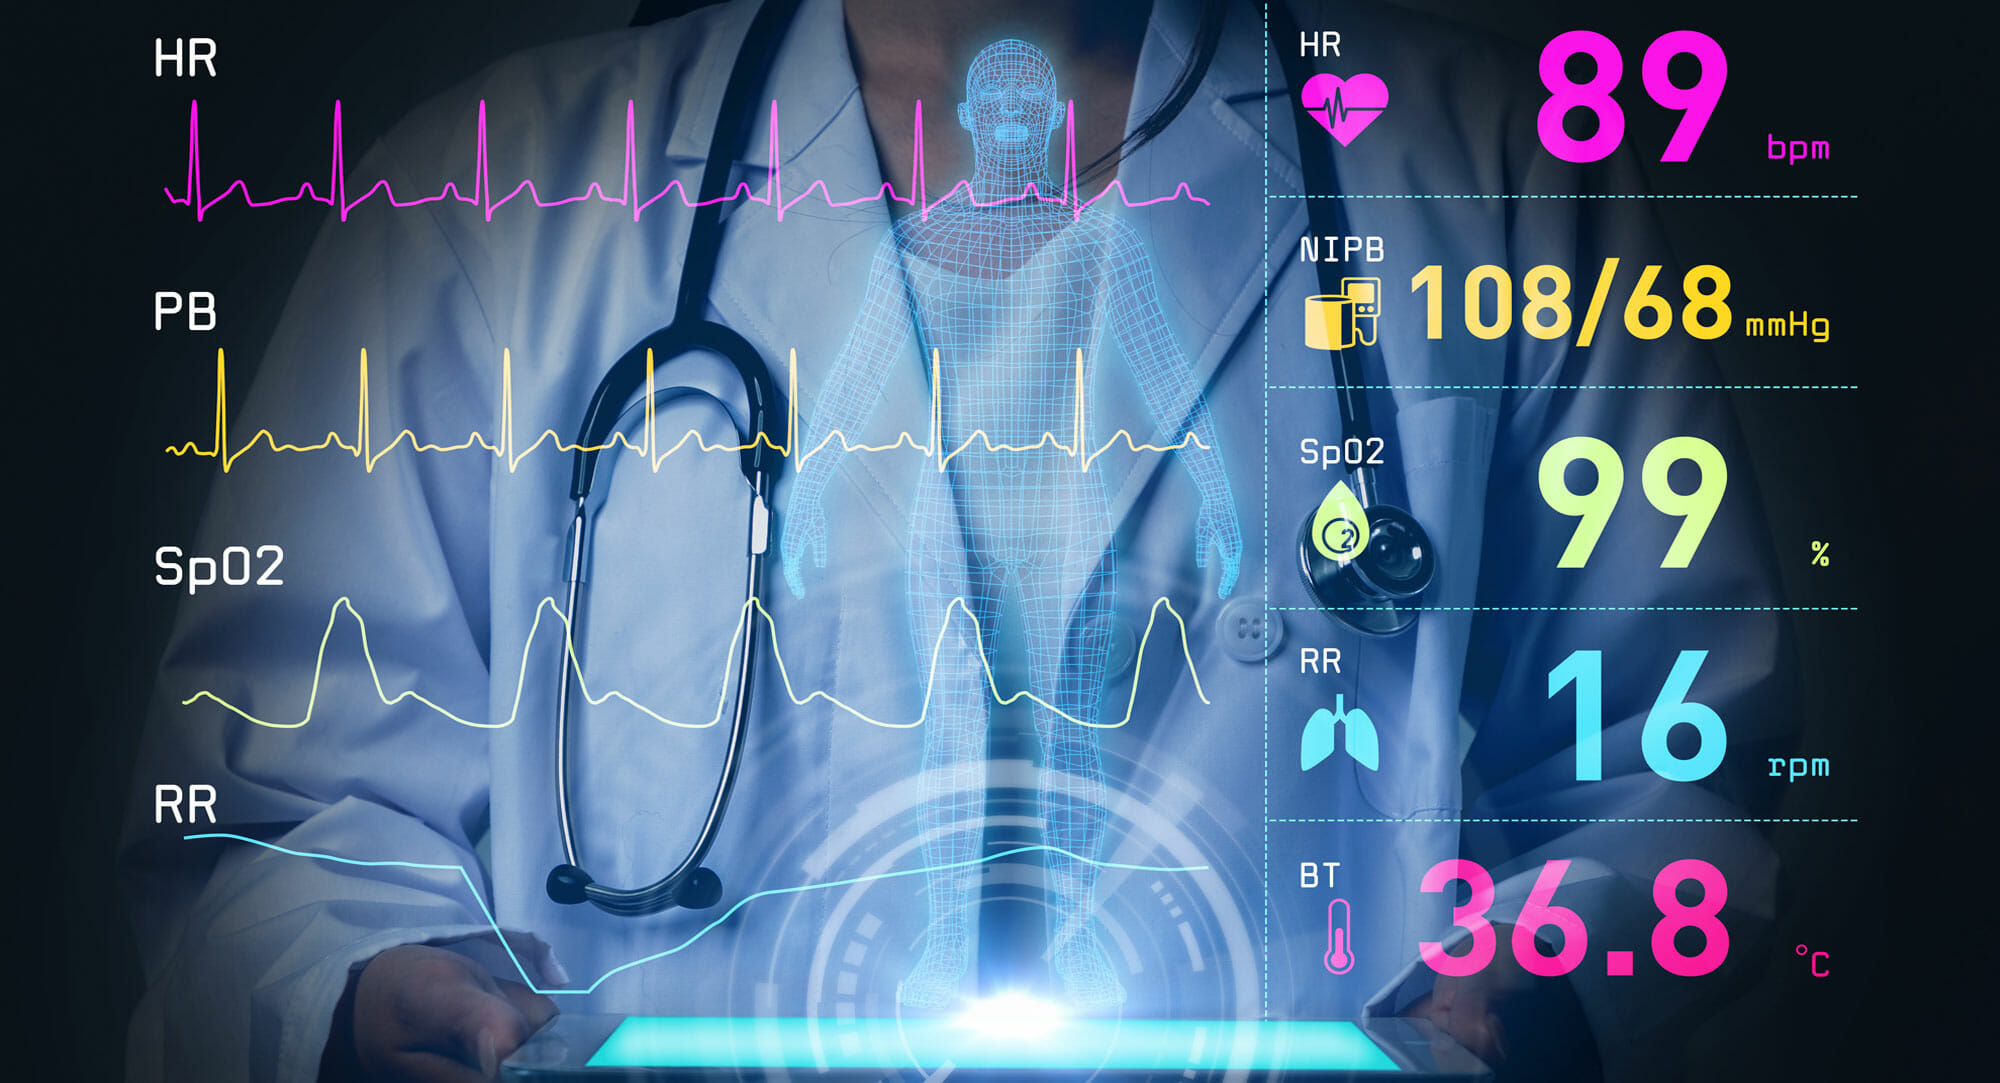 Privacy in critical care after telehealth demands jump